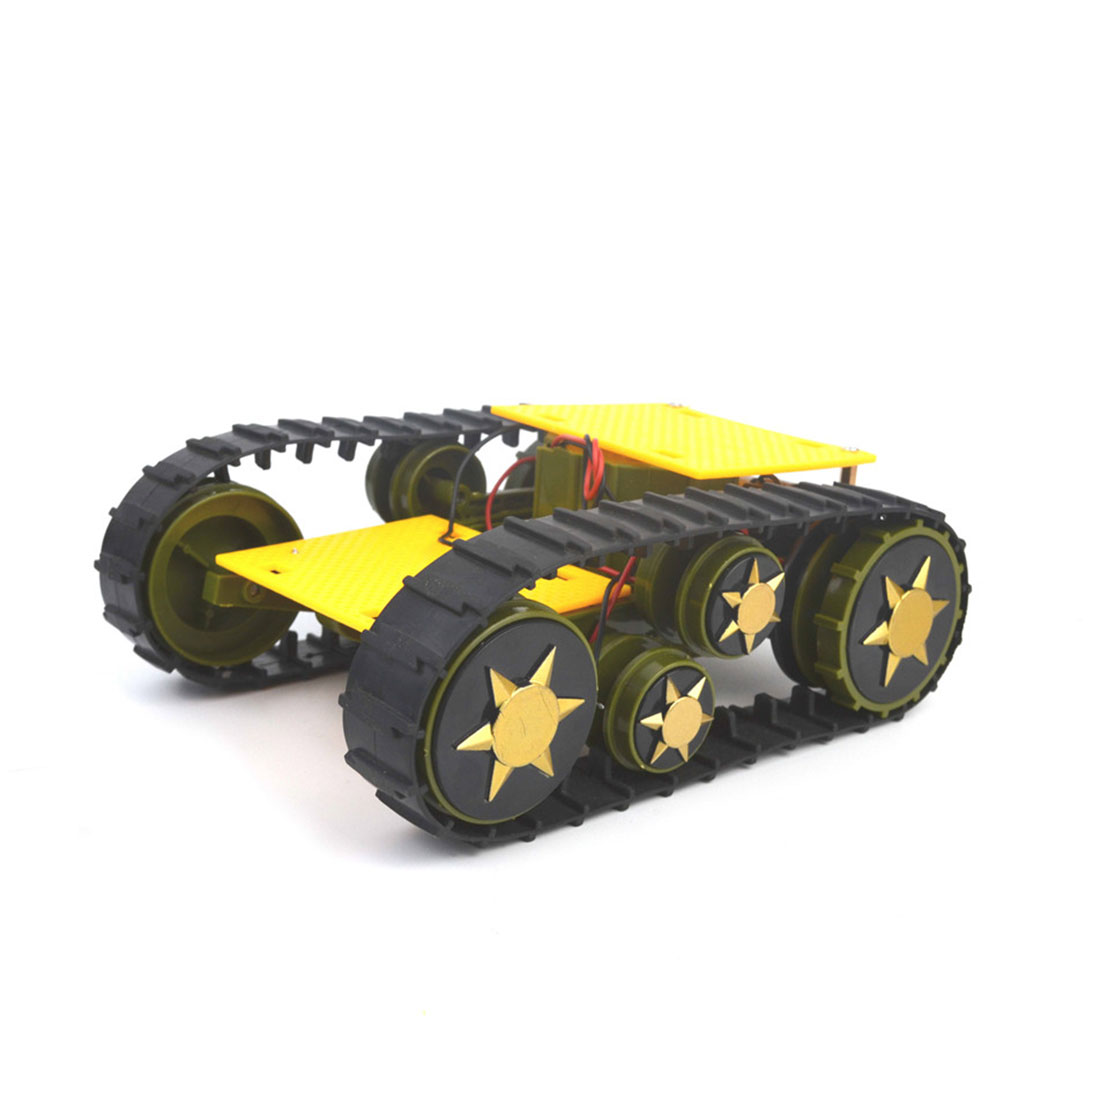 DIY Deformation Smart Tank Robot Crawler Caterpillar Vehicle Platform For Arduino SN1900